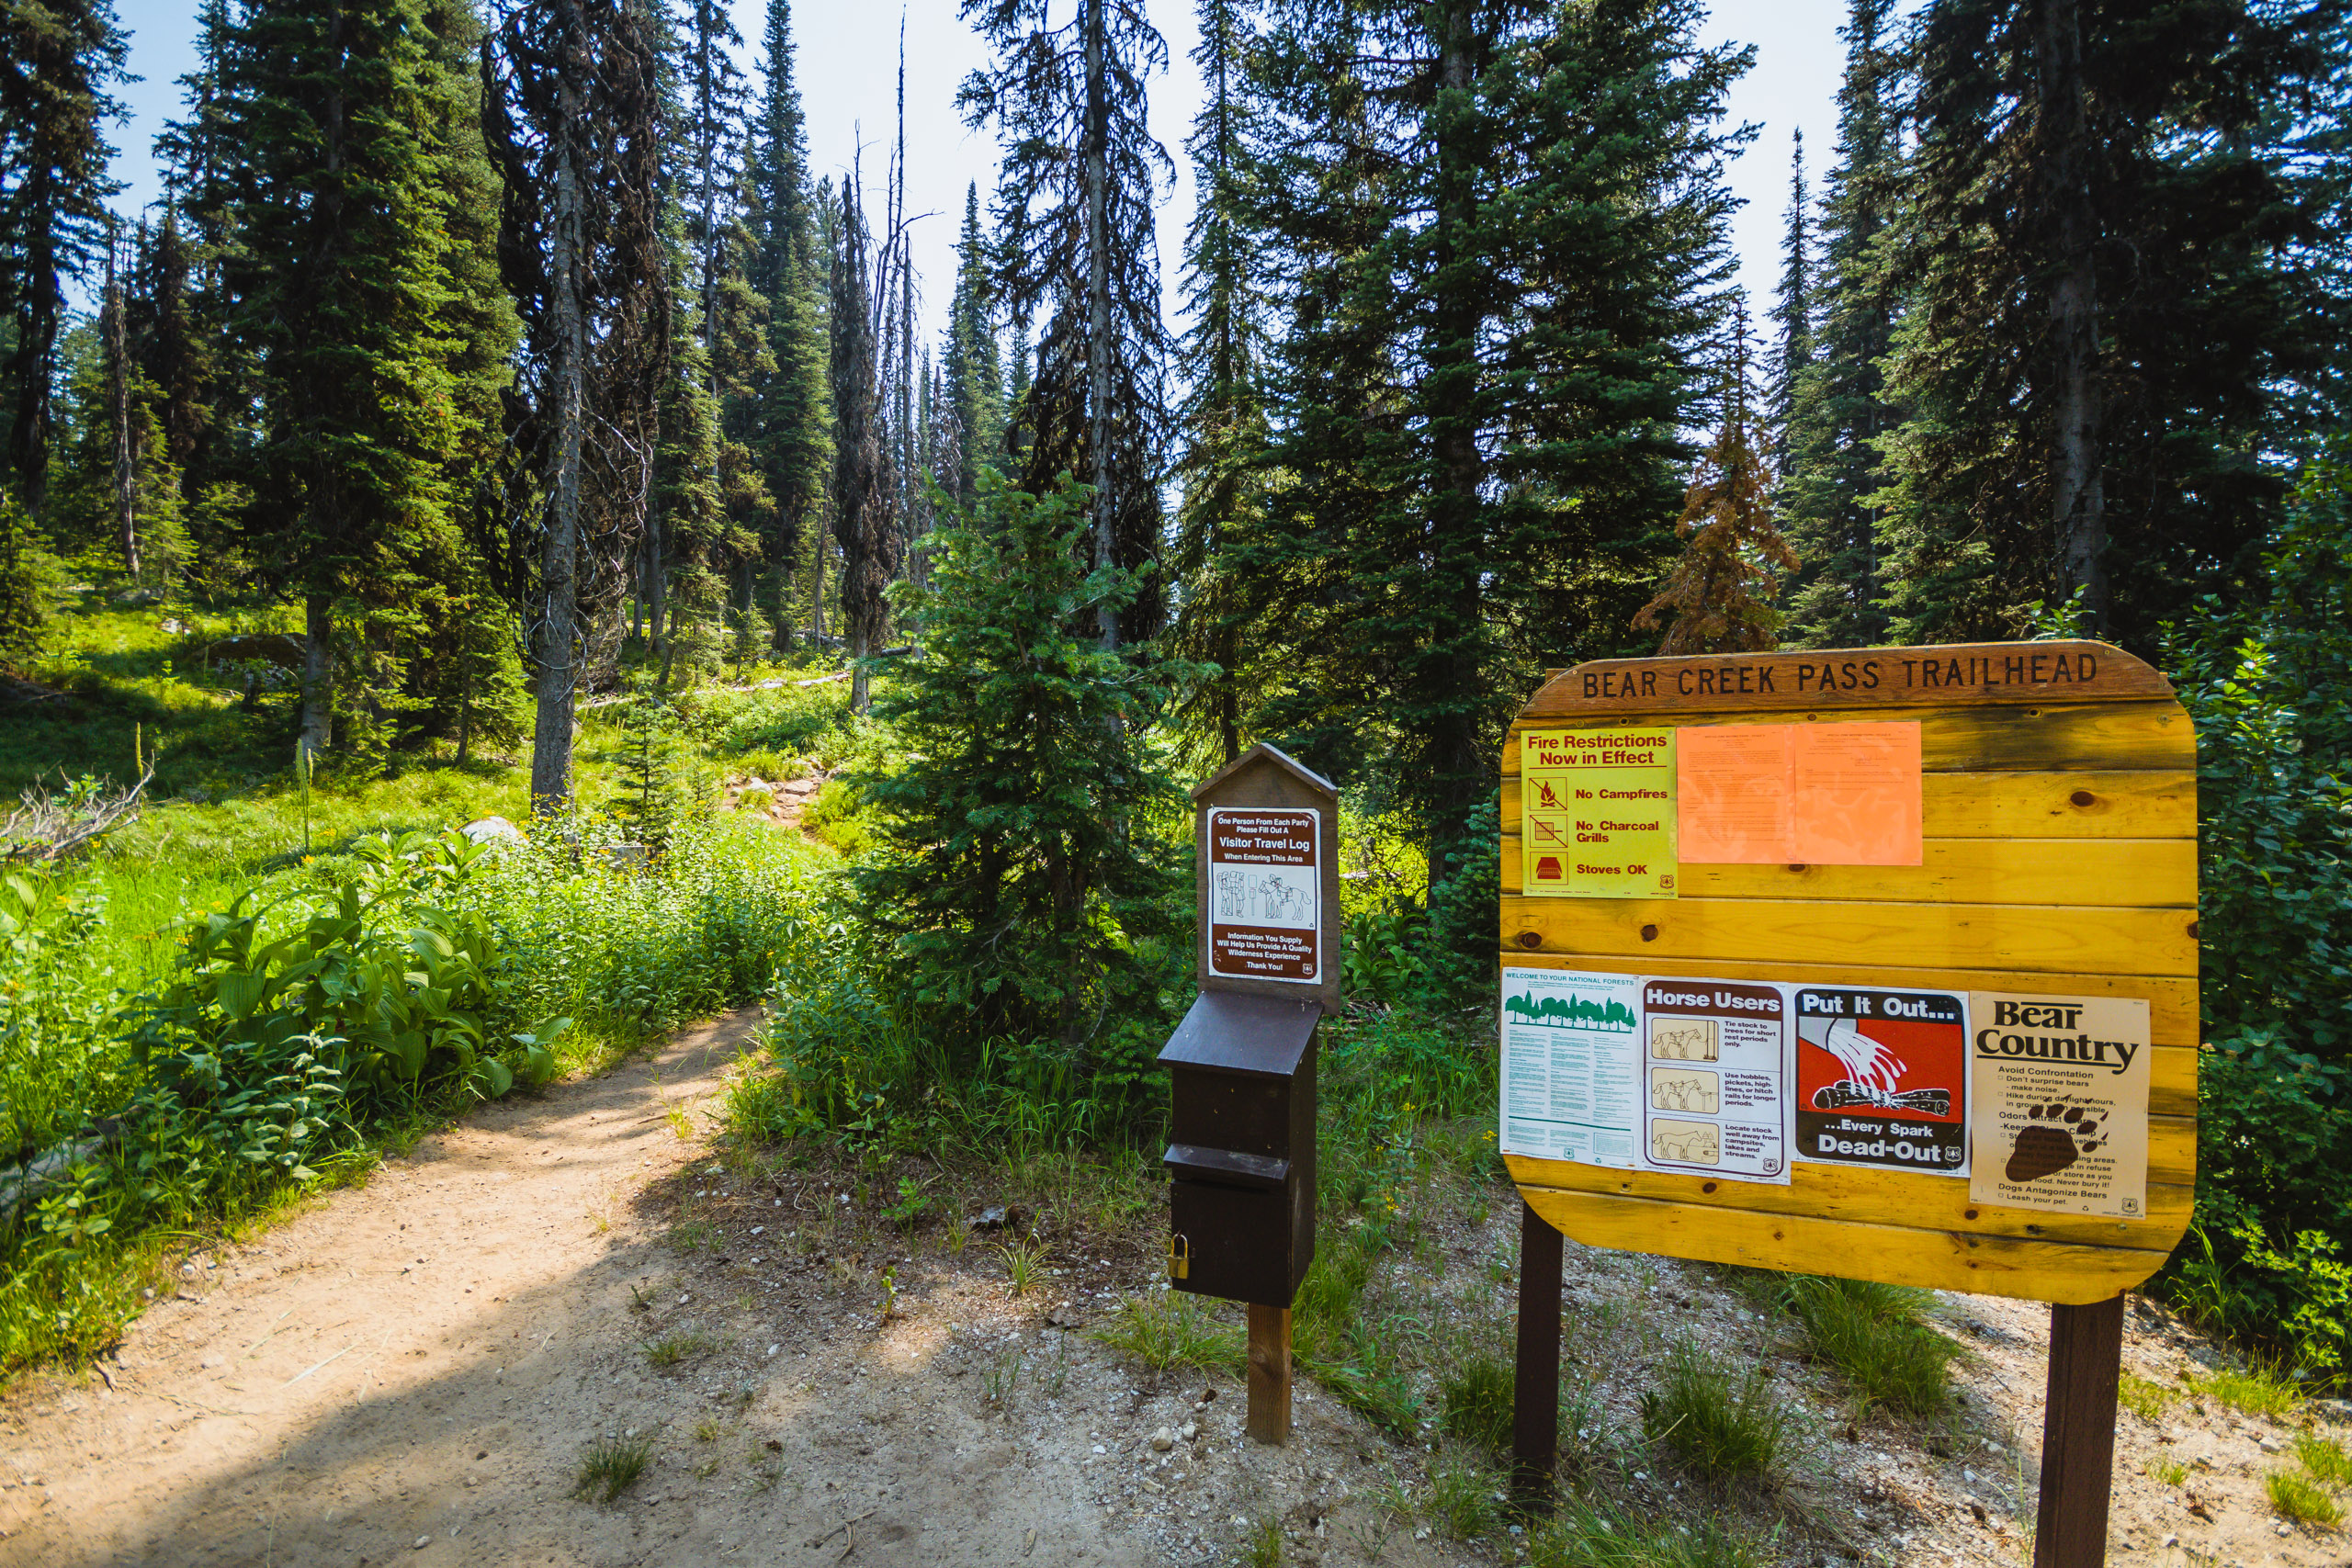 Starting out from the Bear Creek Pass trailhead